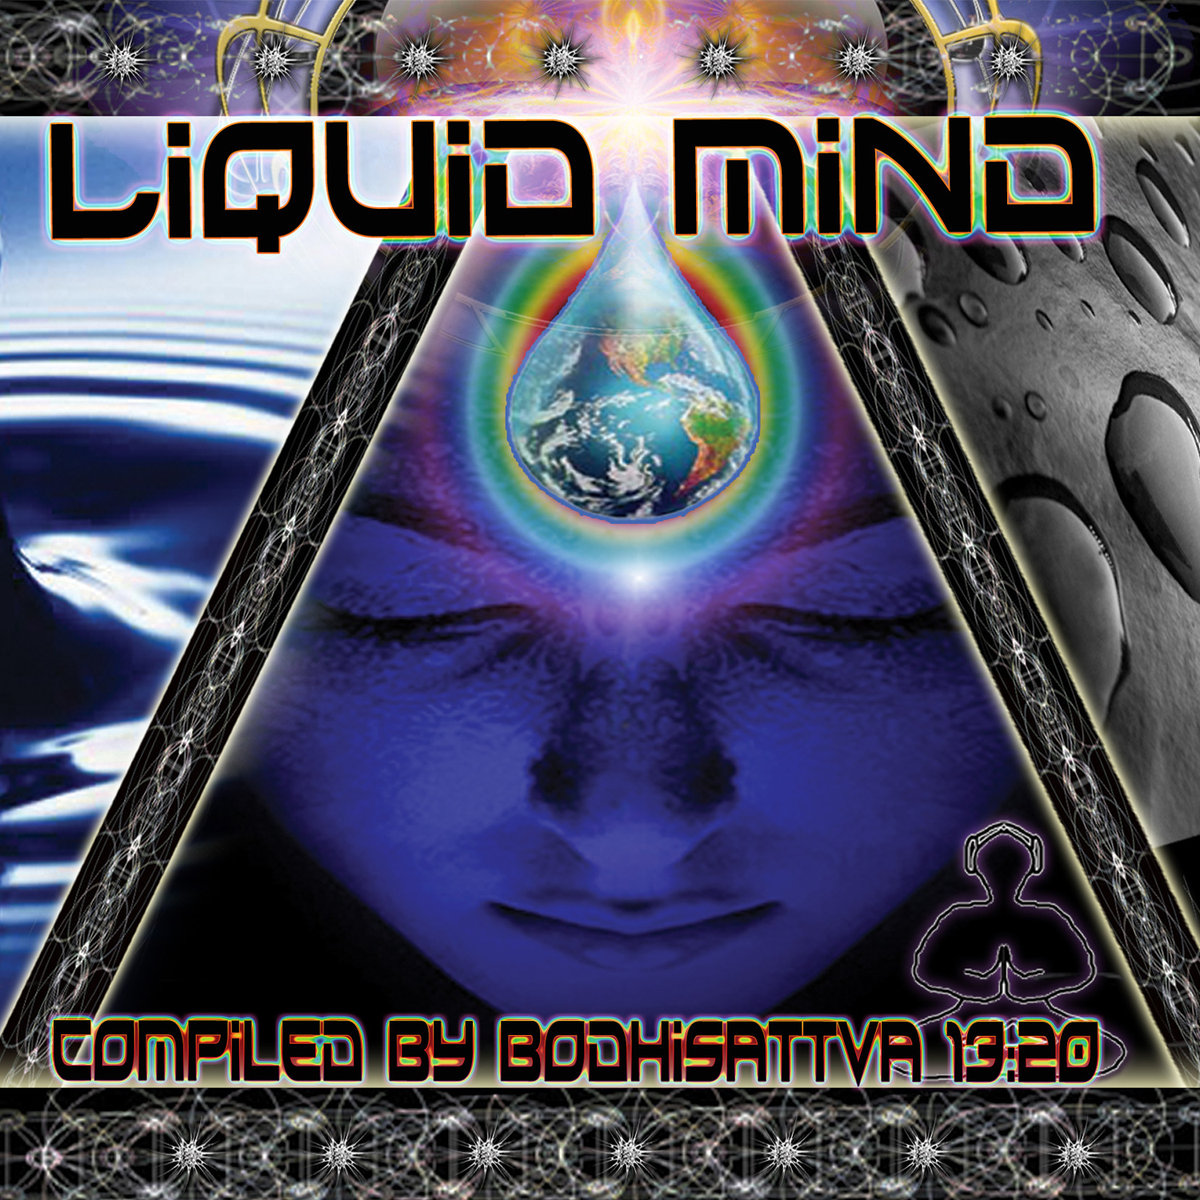 Cognoscenti (Dai / Amatti) - Lava @ 'Various Artists - Liquid Mind (Compiled by Bodhisattva 13:20)' album (electronic, and)